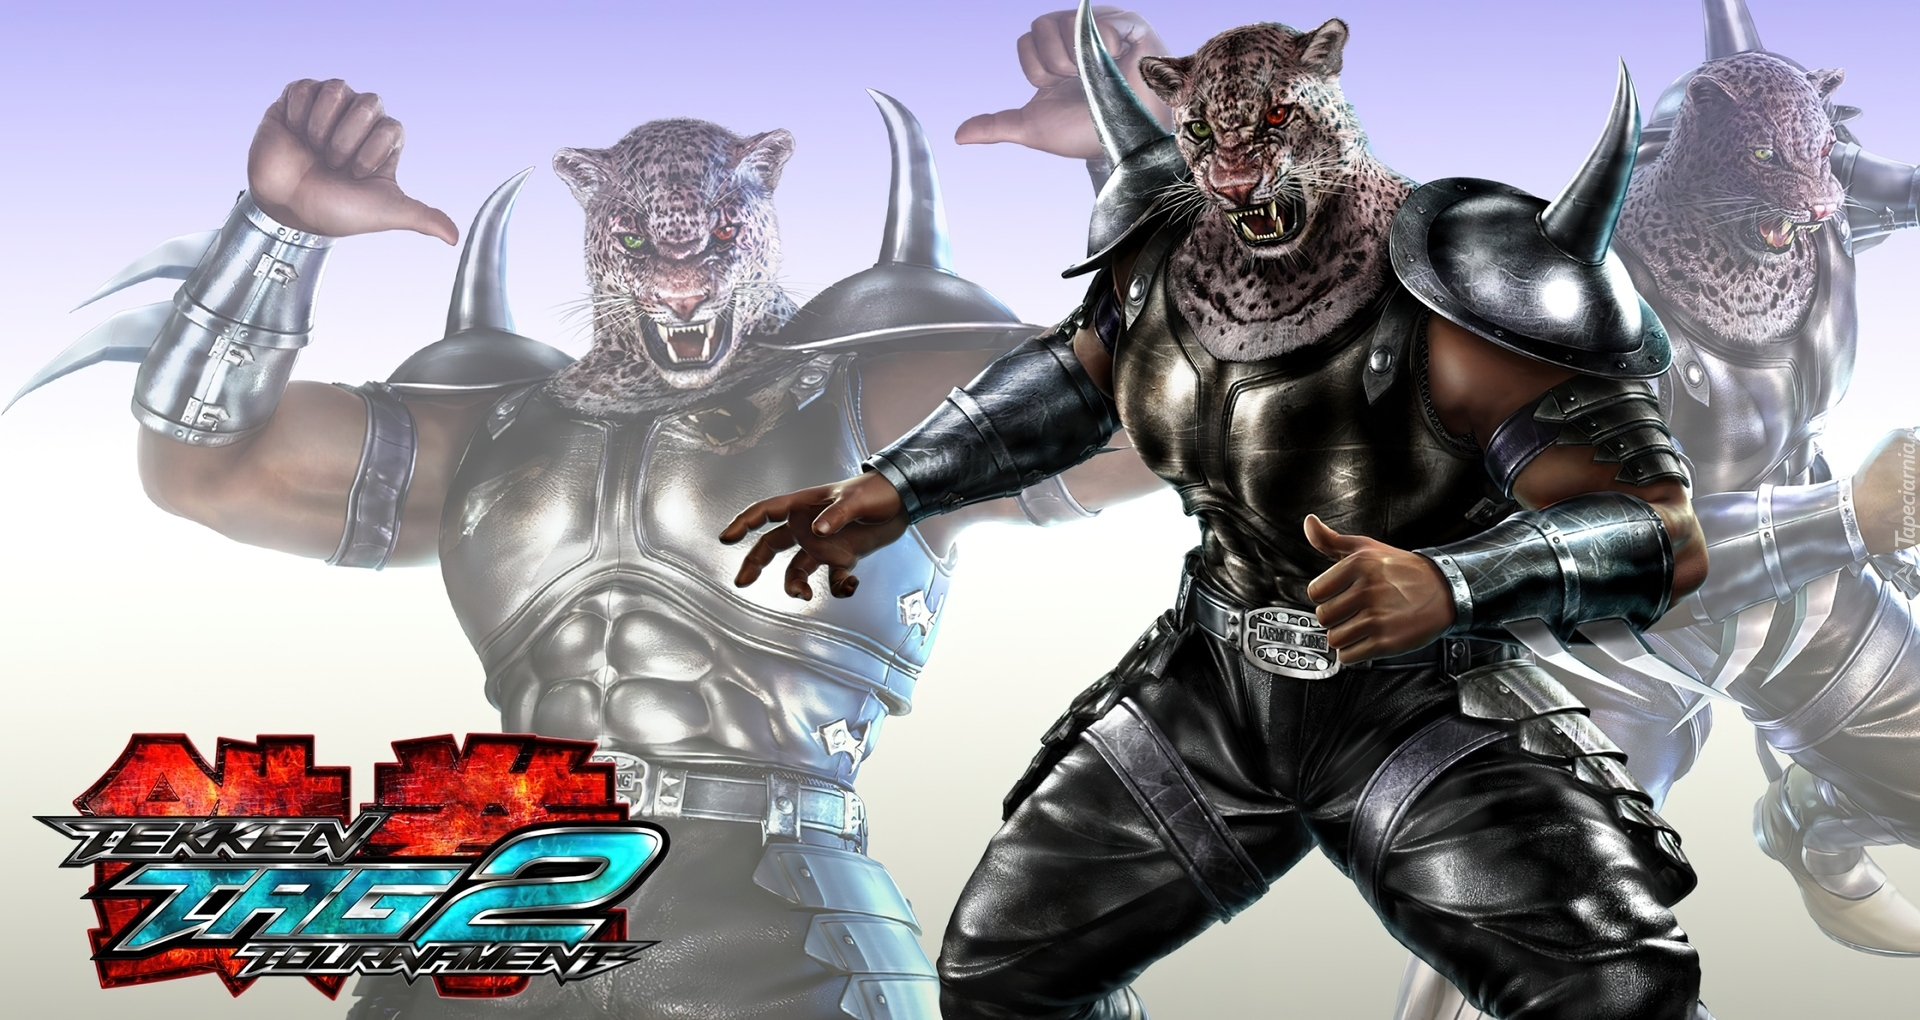 154435_tekken_tag_tournament_2_armor_king.jpg